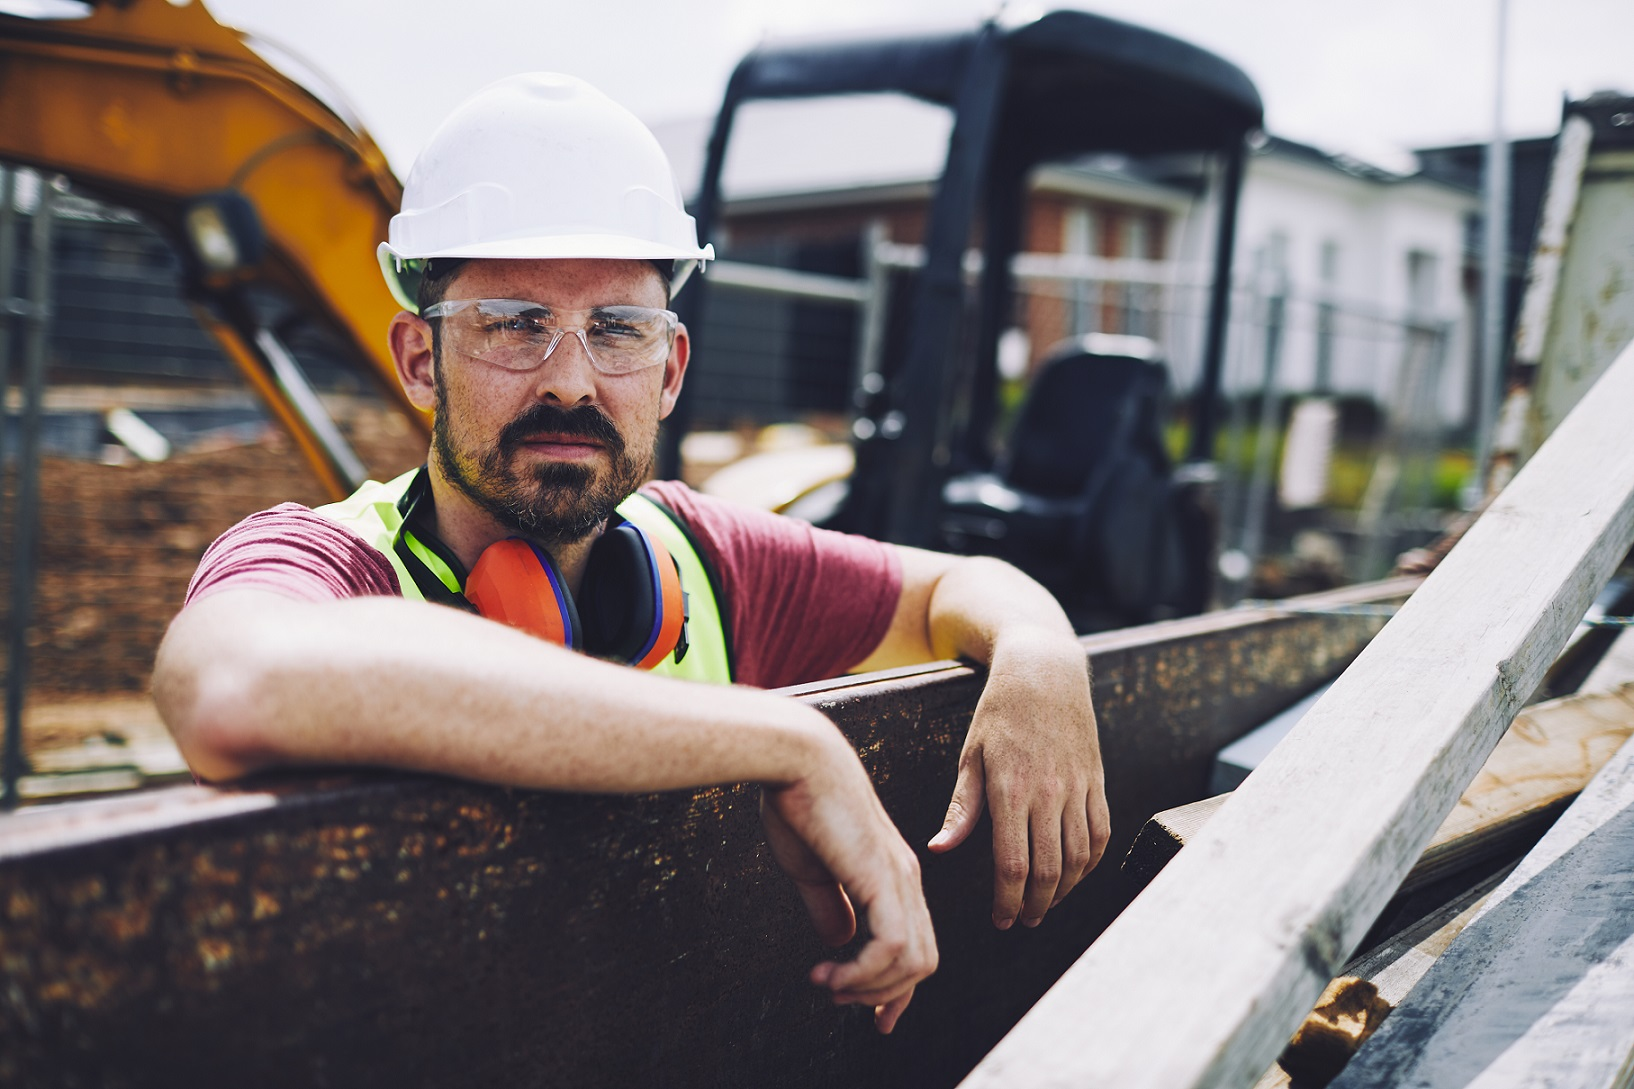 Construction worker advocates for workplace health and safety for Safe Work Month